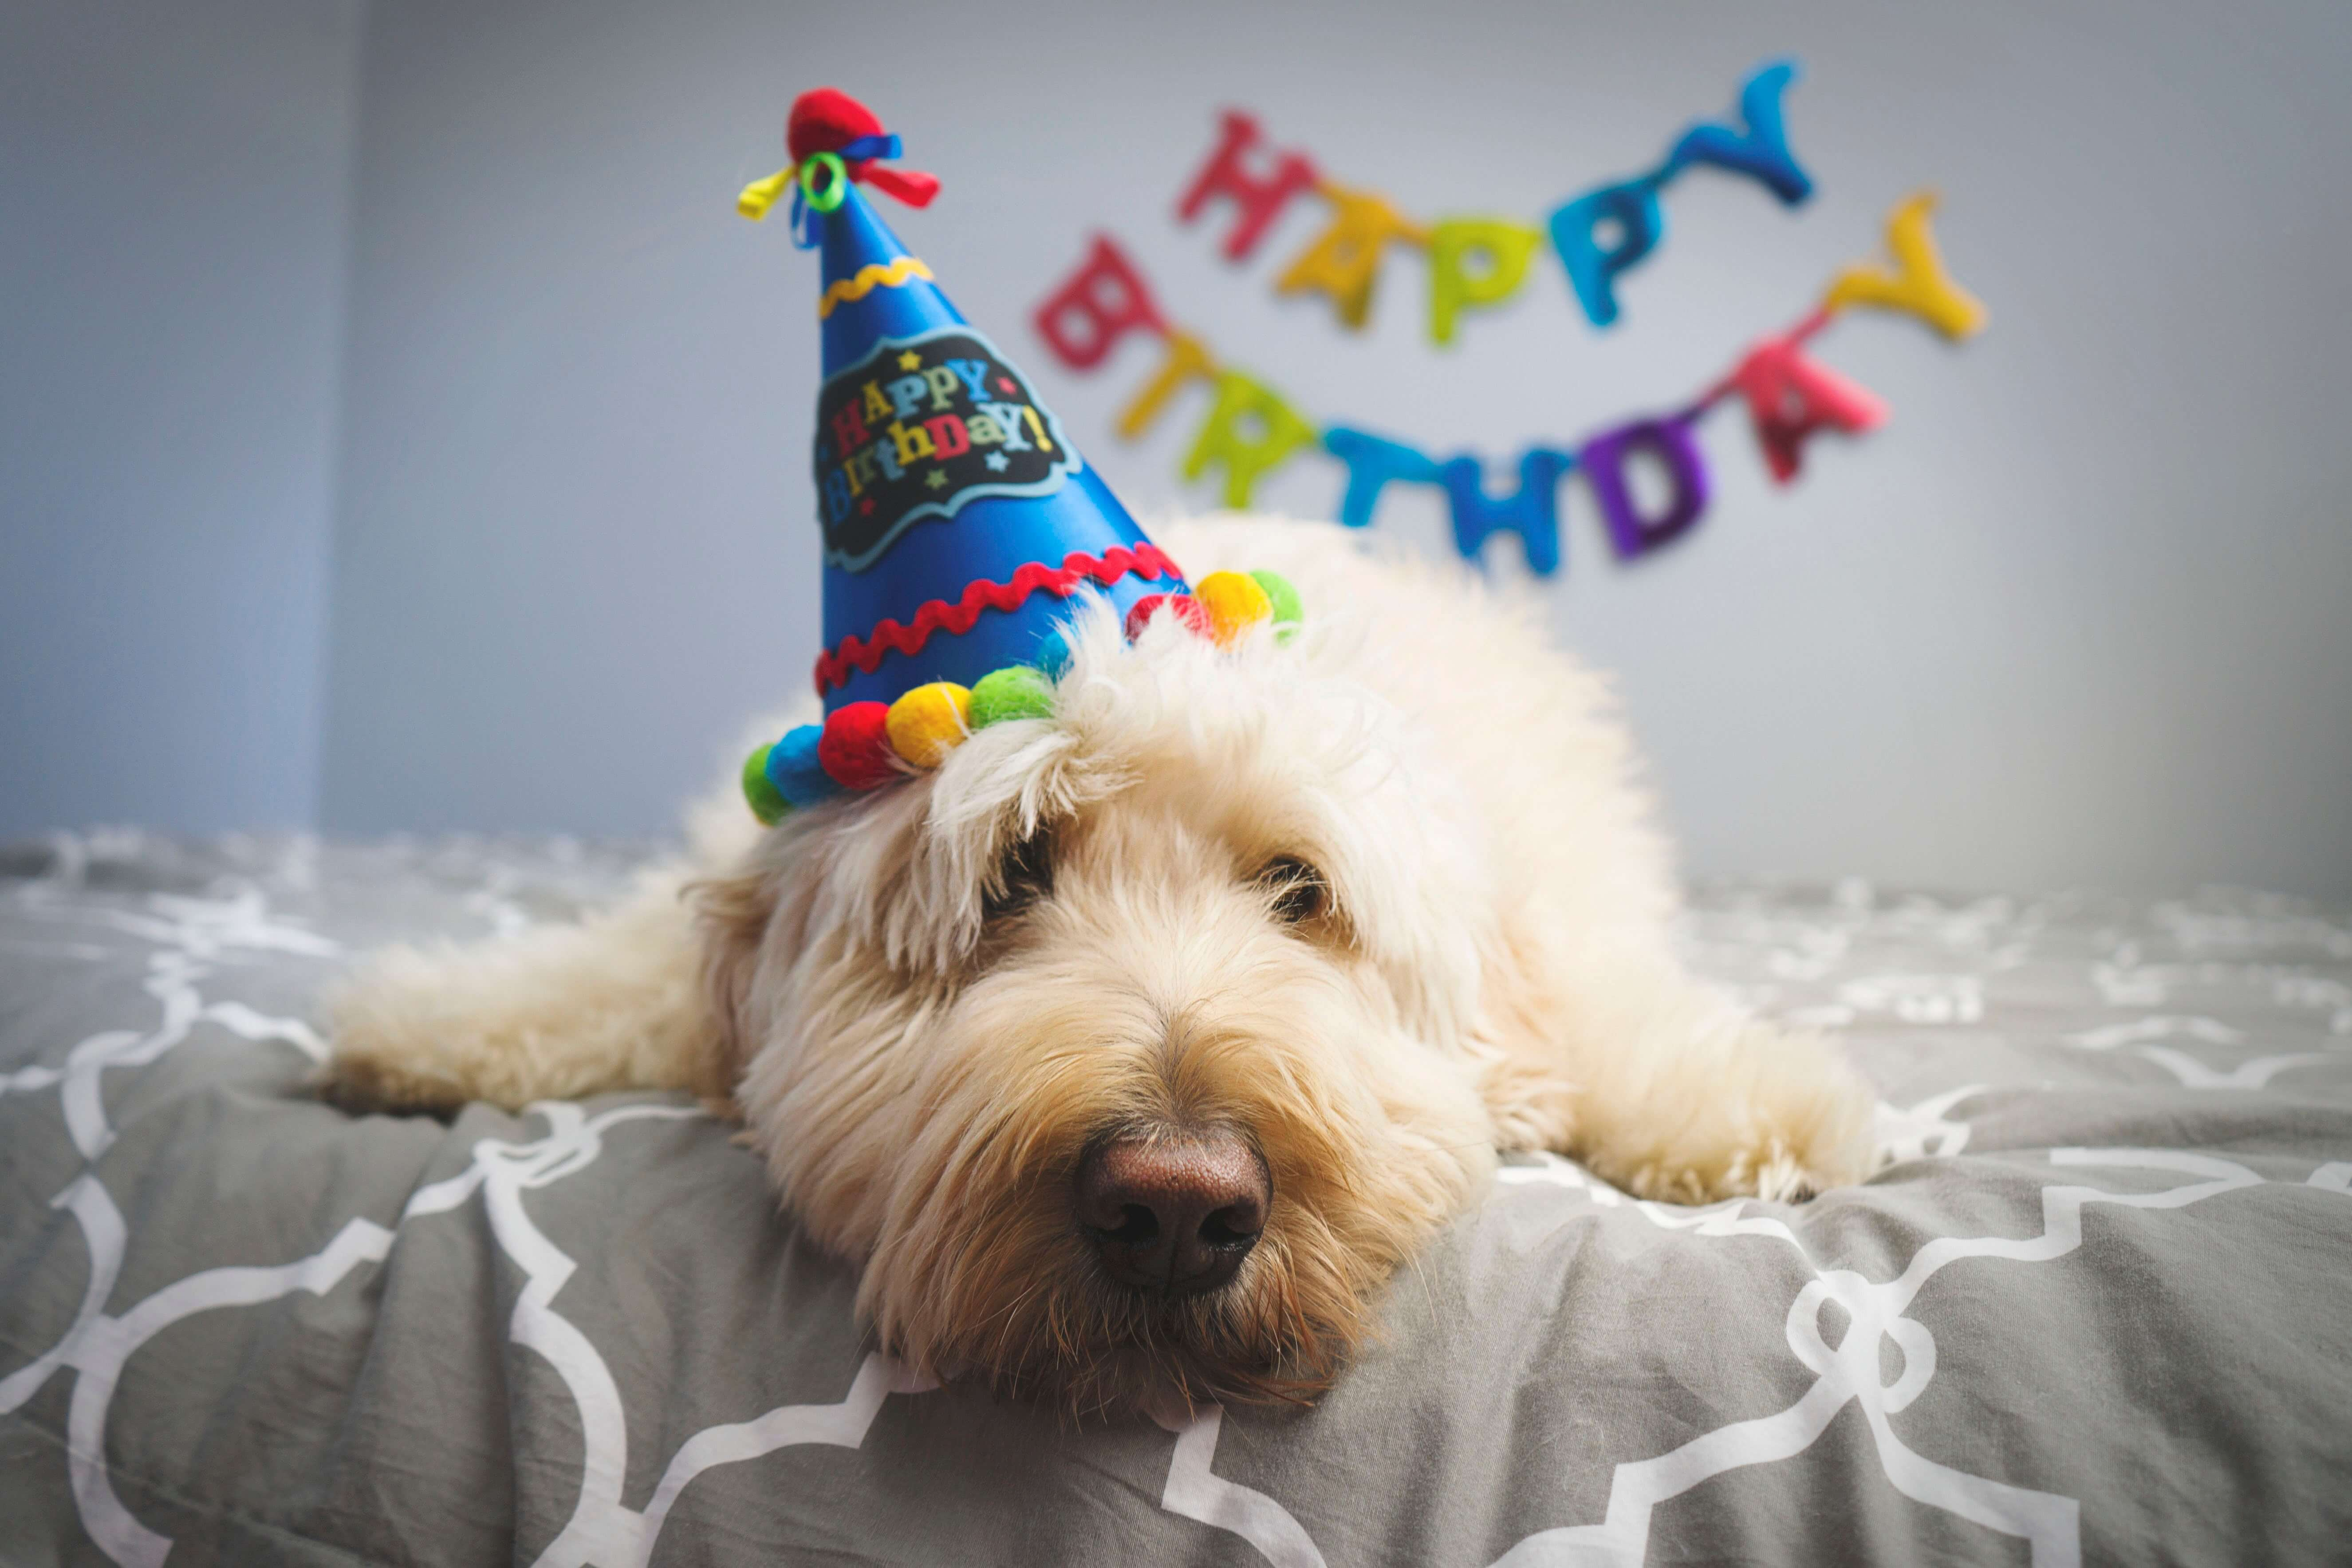 Puppy on a birthday party